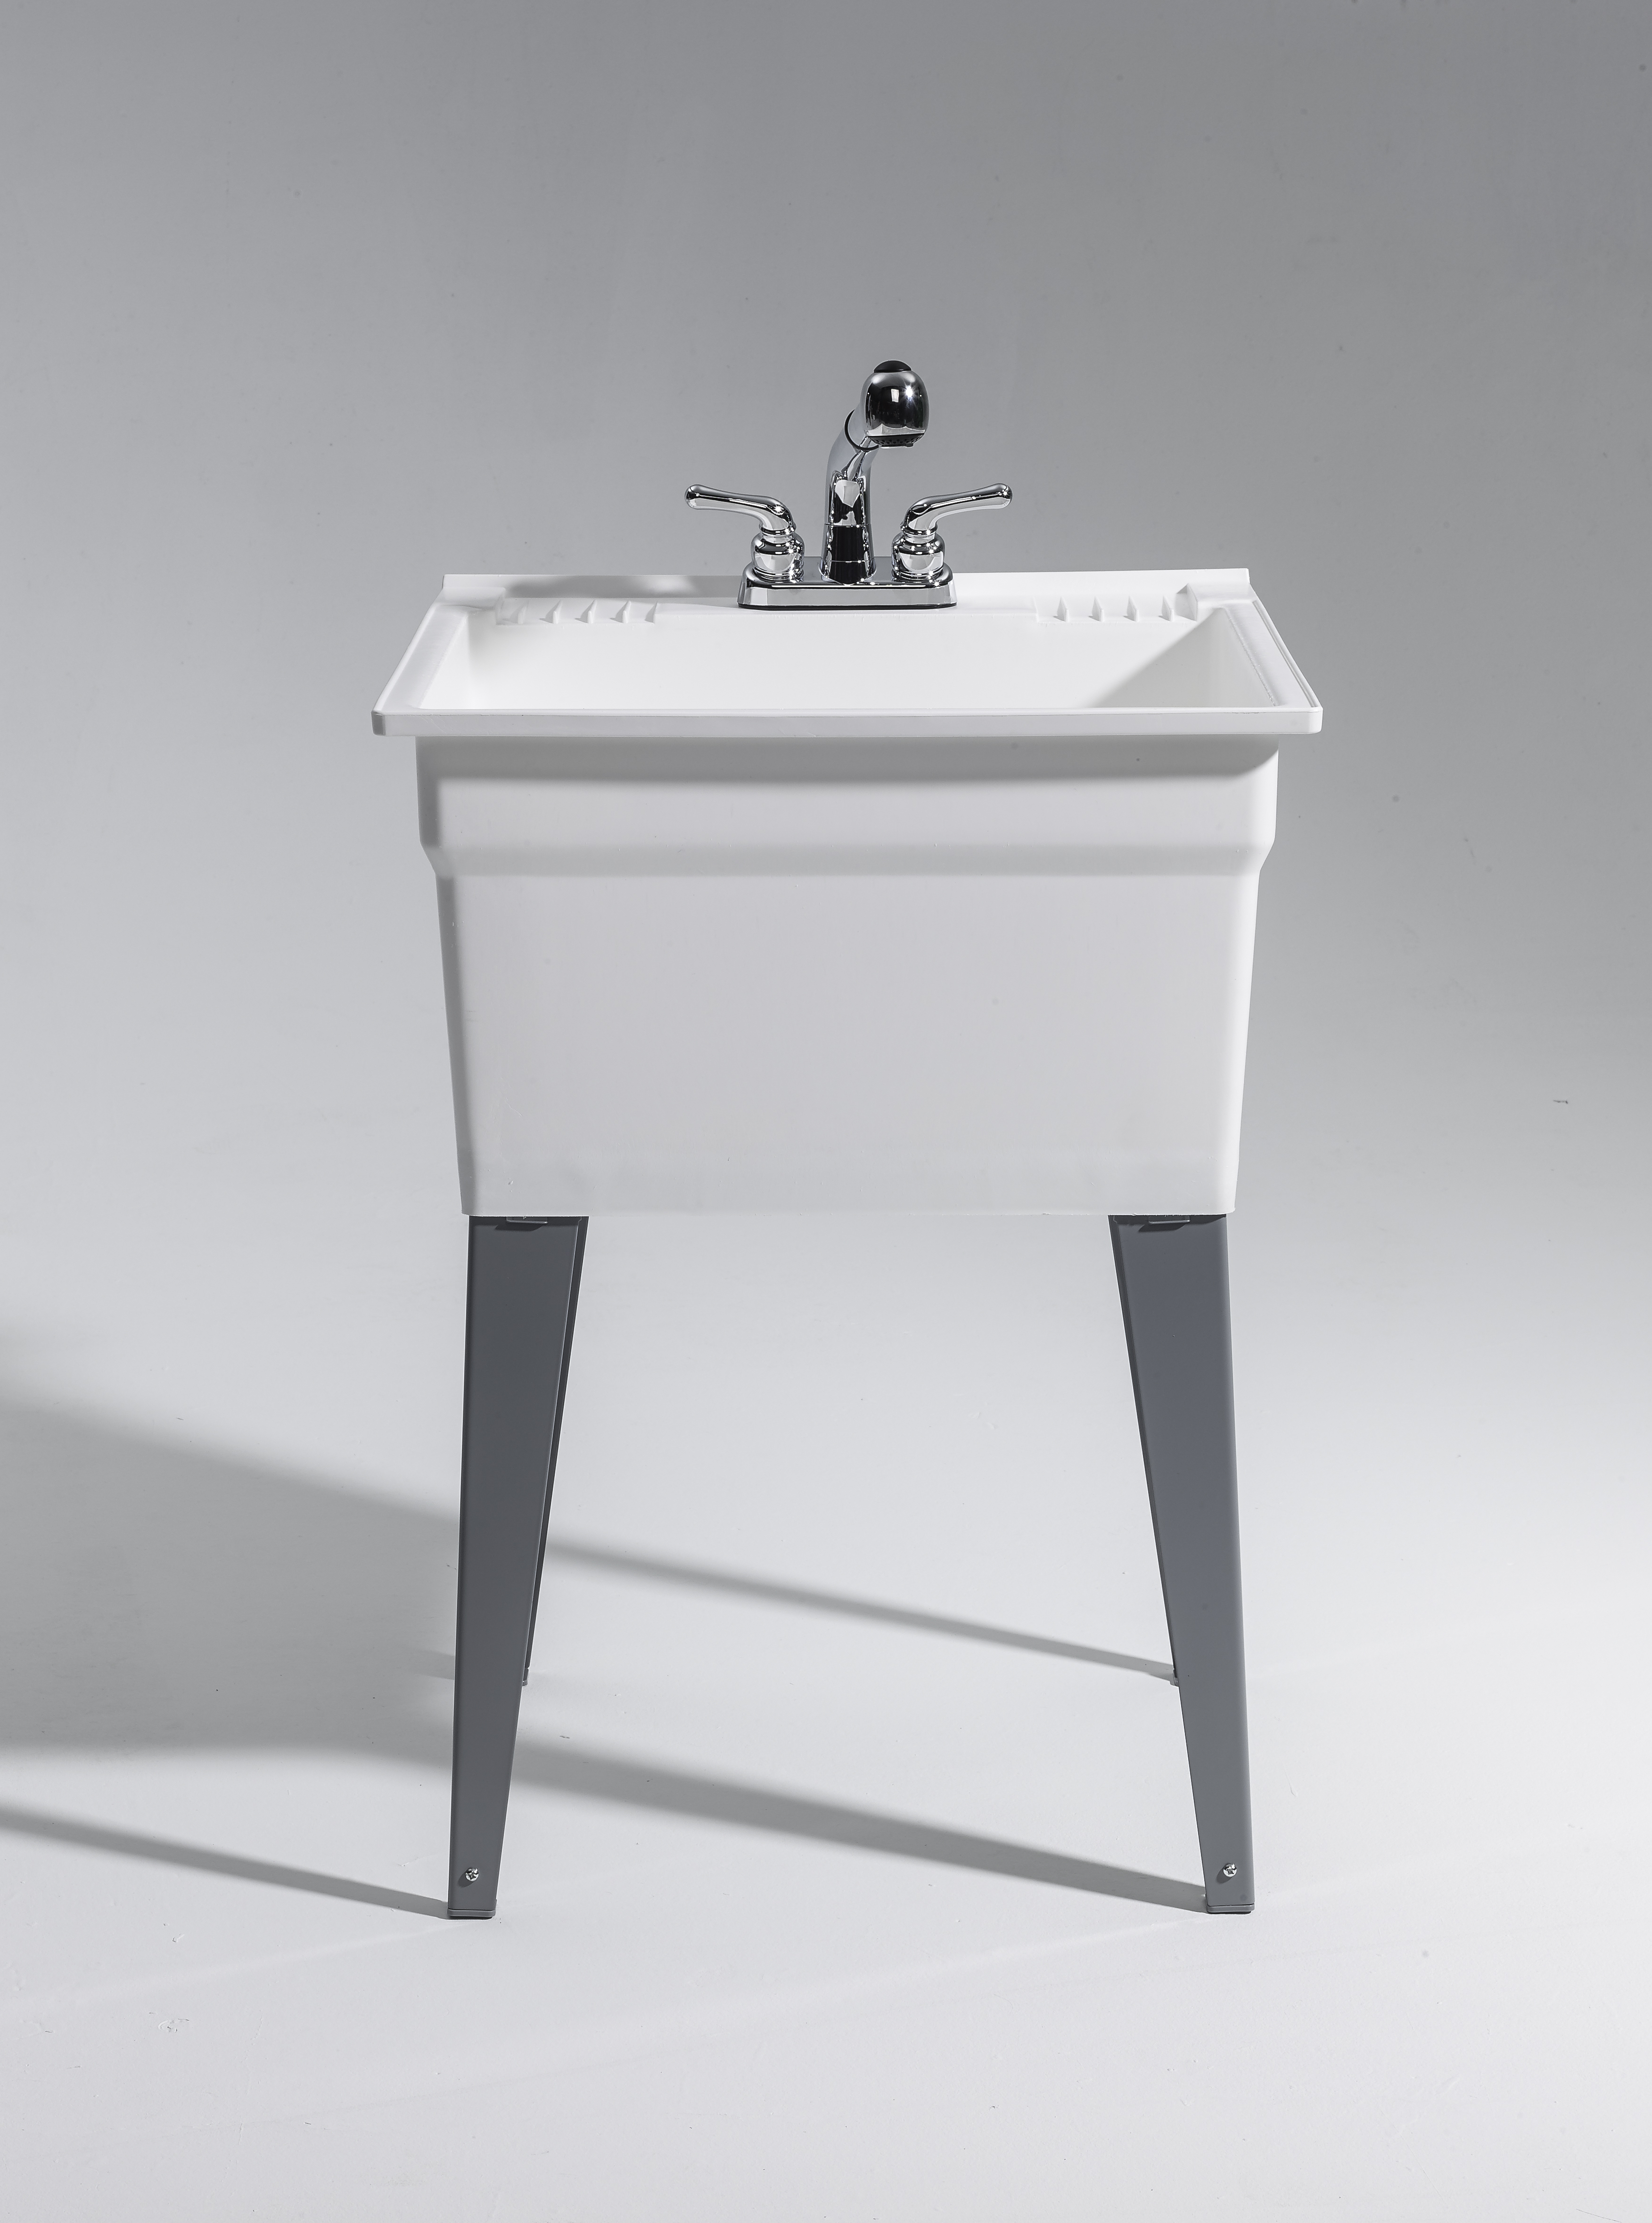 Laundry Sink With Faucet Heavy Duty Sink Complete Kit